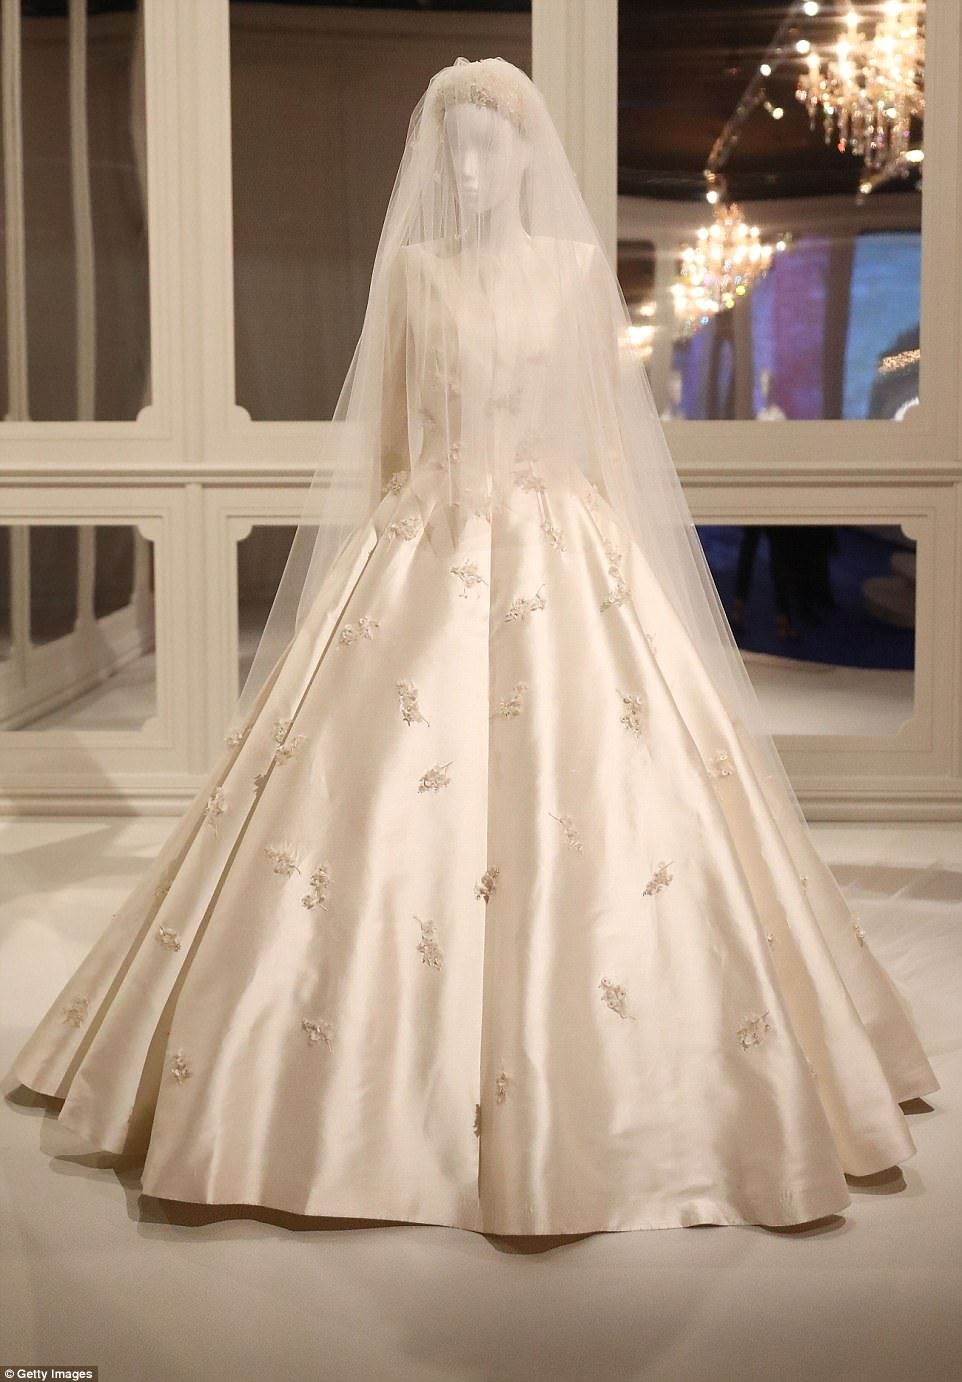 Miranda Kerr S Wedding Gown To Go On Display At Dior Exhibition